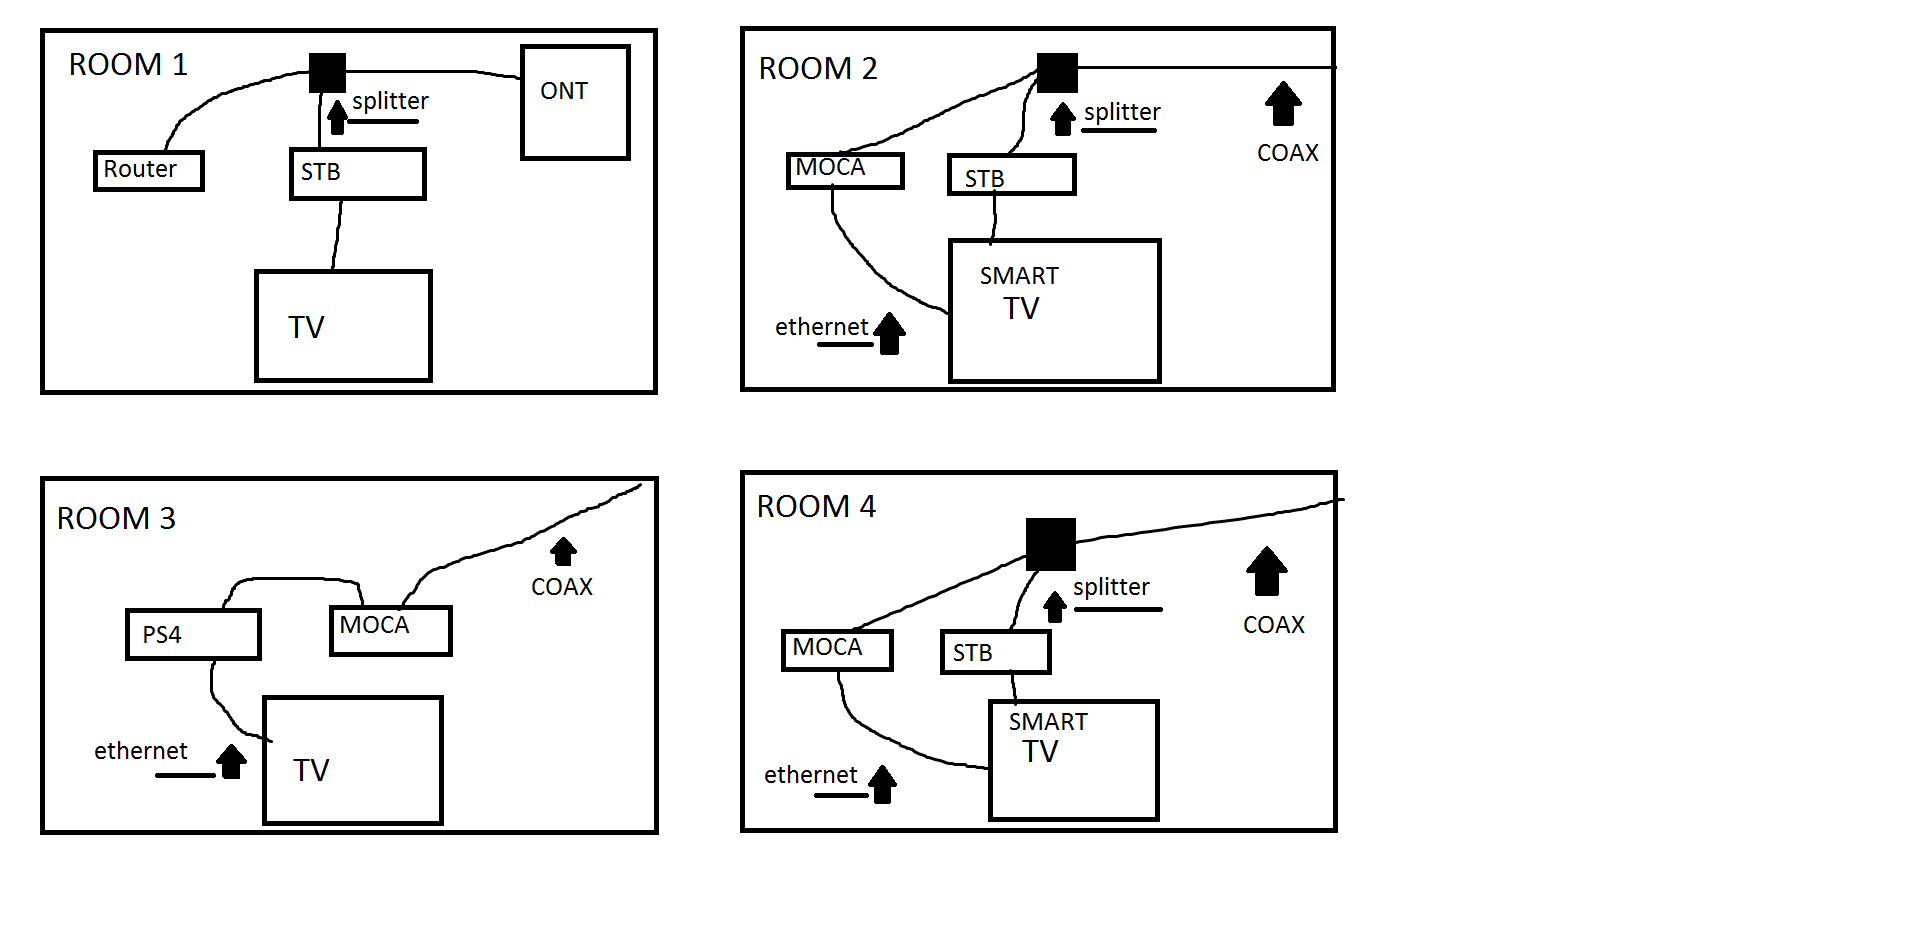 Usb To Rs485 Wiring Diagram together with Diagram For Wiring Daisy Chain moreover Outlet Wiring Pigtail also Dmx 512 Wiring Diagram besides Hohner Encoder Wiring Diagram. on daisy chain connection diagrams